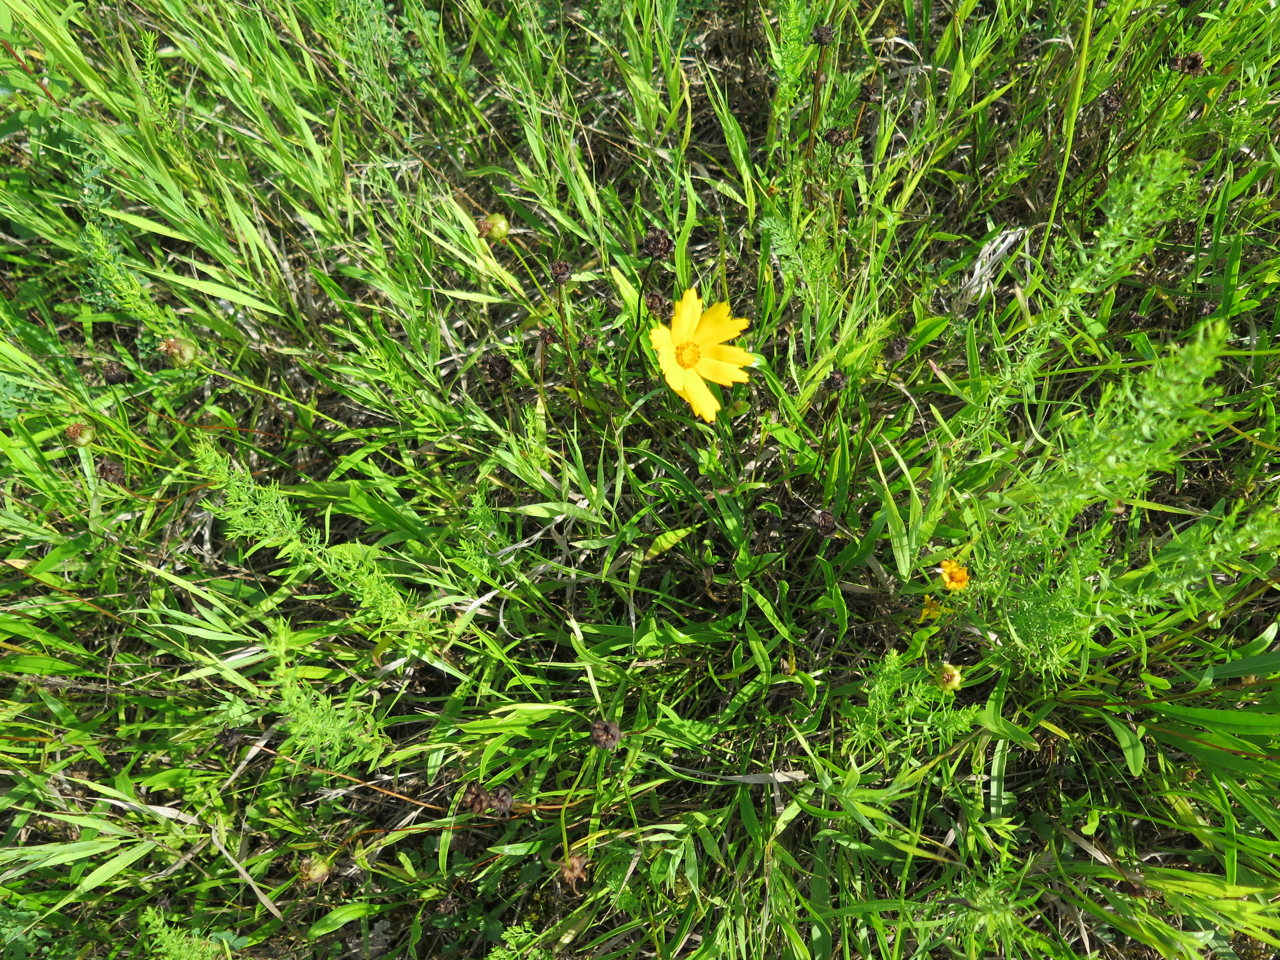 Coreopsis lanceolata in Wisconsin